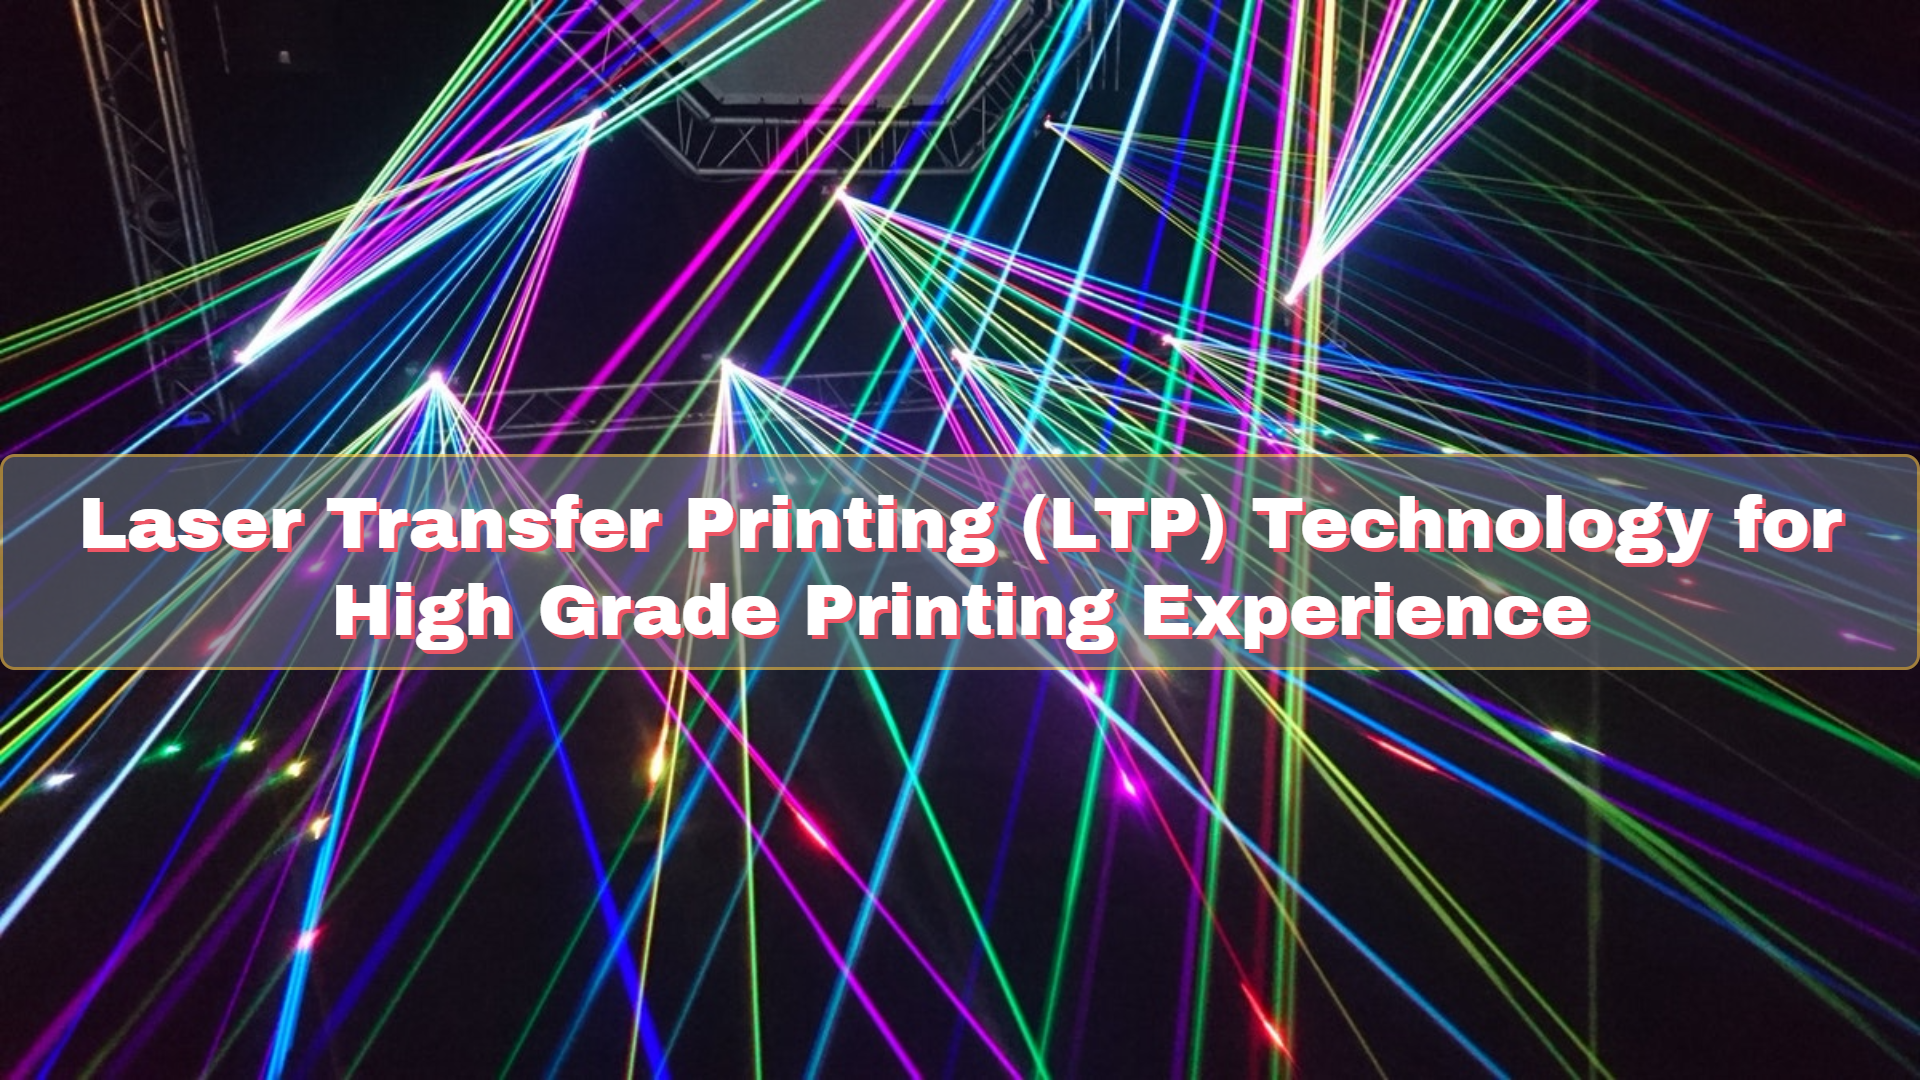 Laser Transfer Printing (LTP) Technology for High Grade Printing Experience